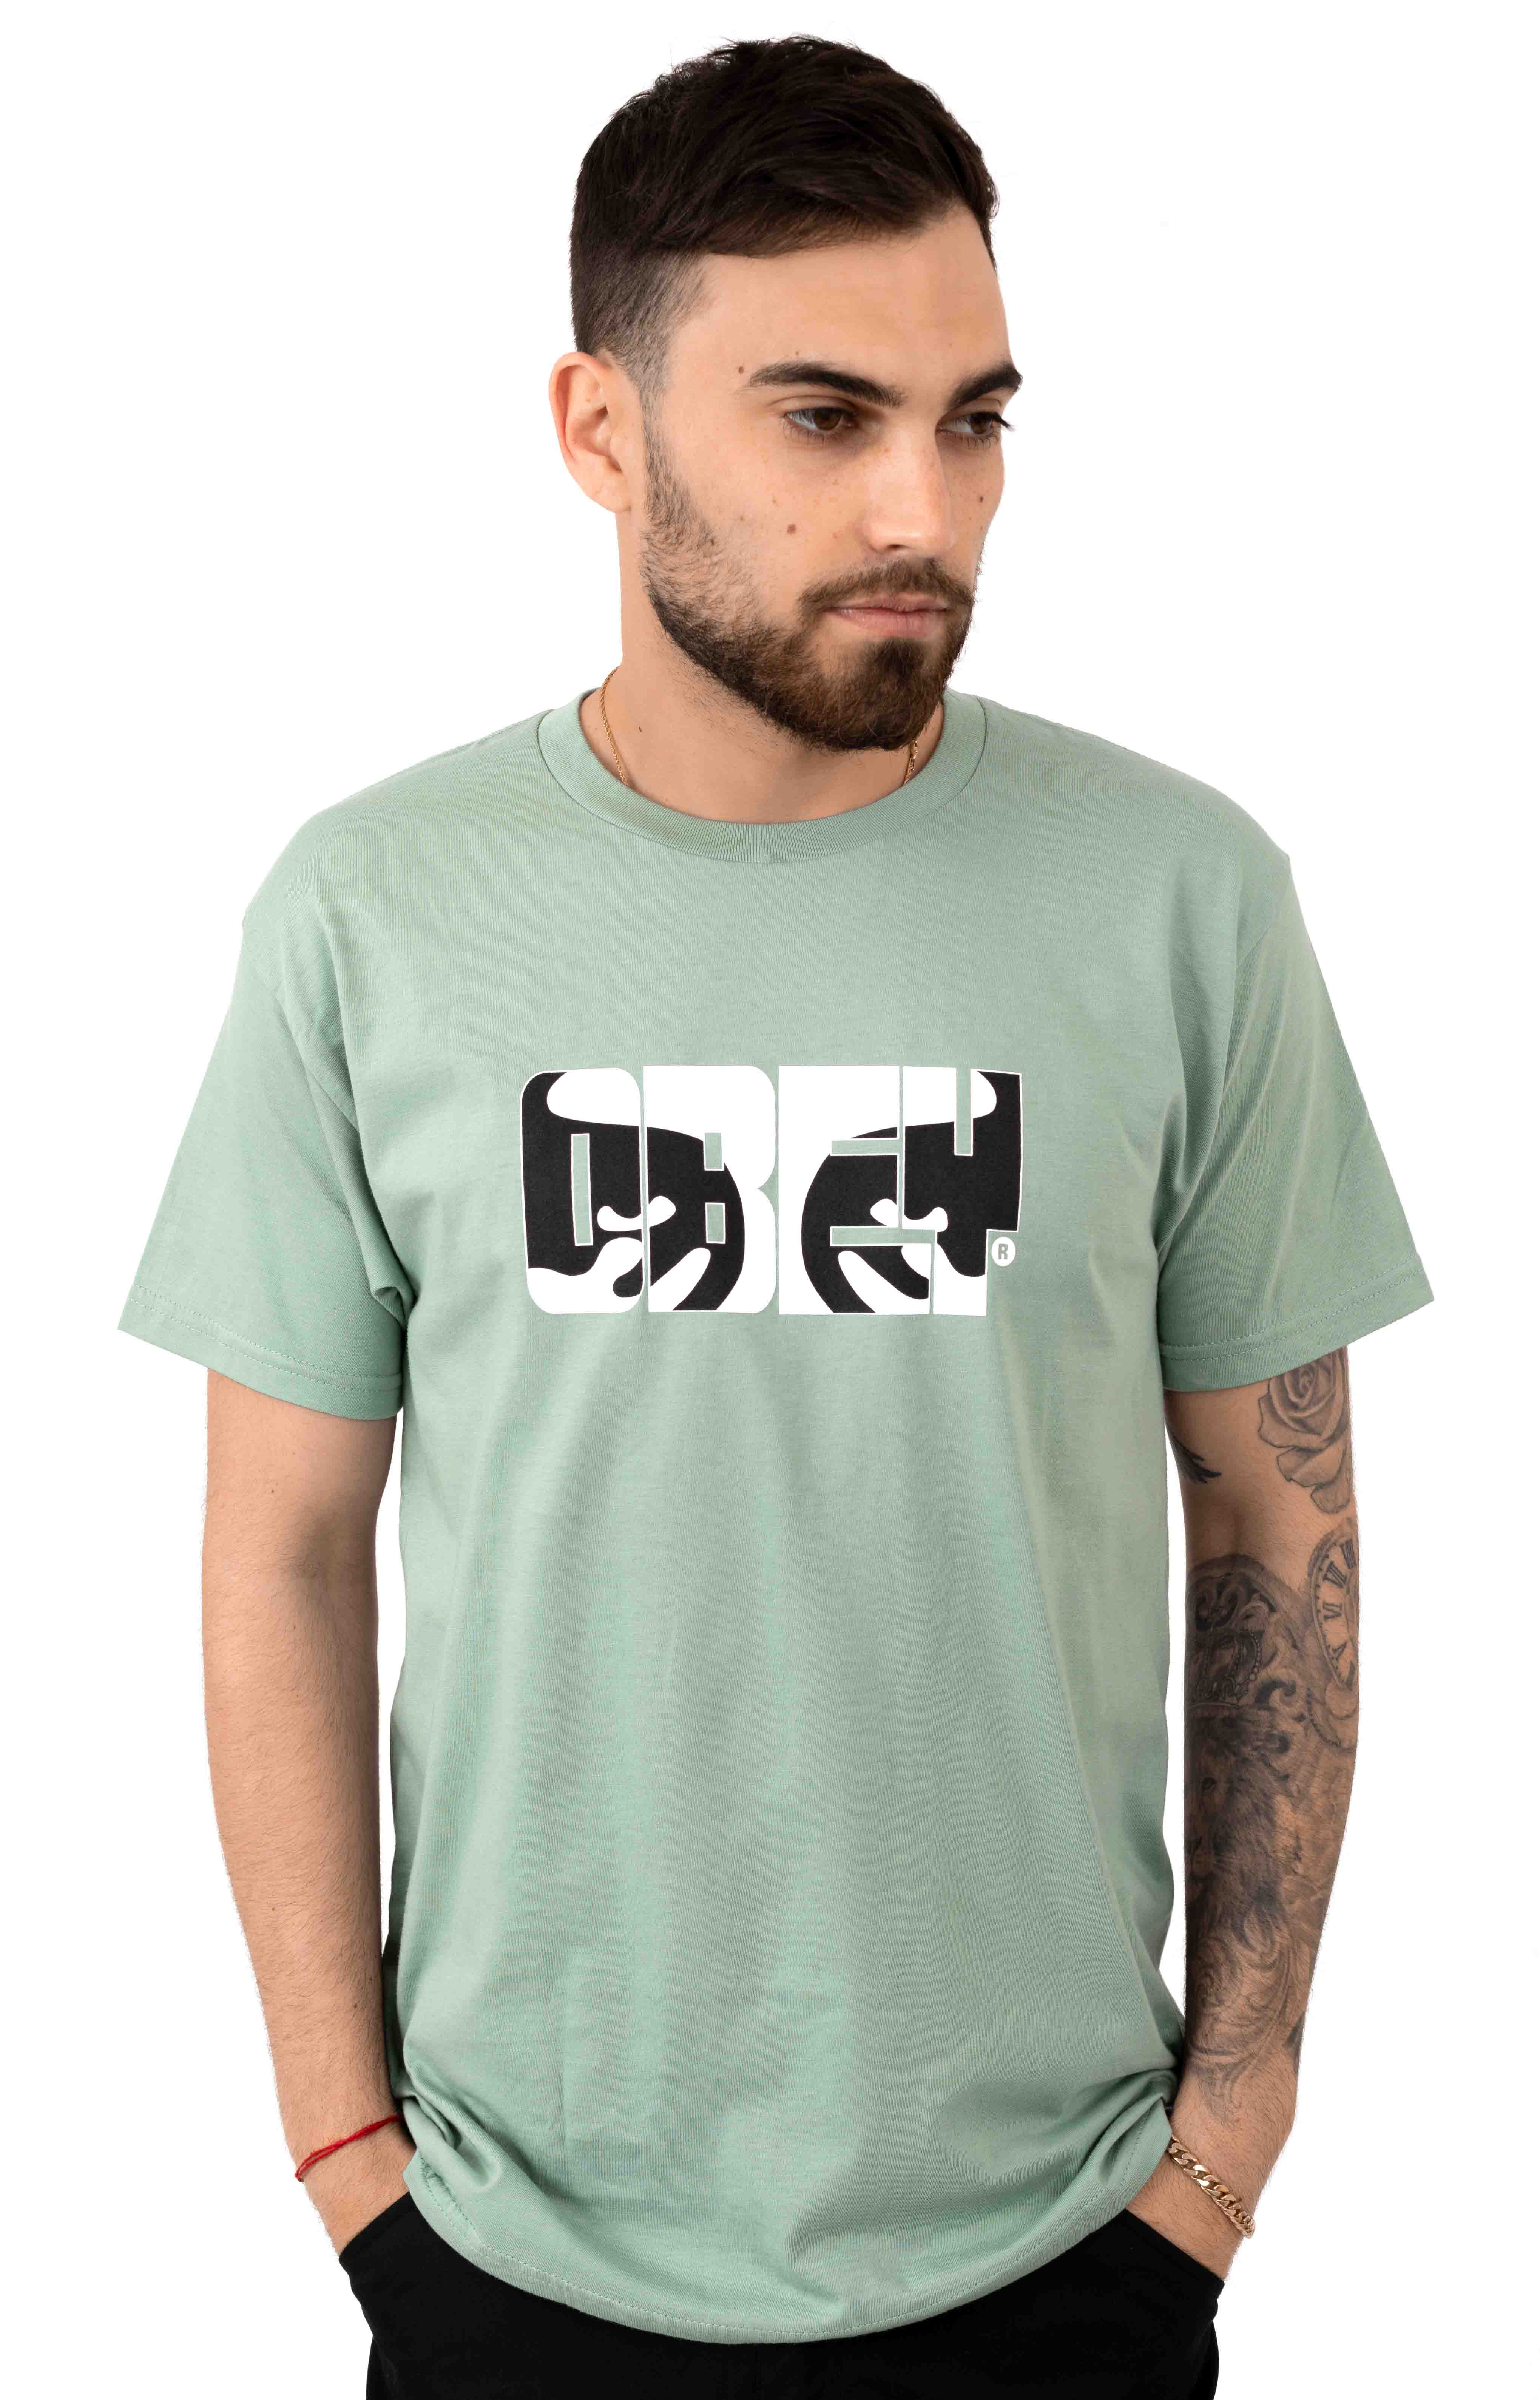 Eyes Of Obey T-Shirt - Sage